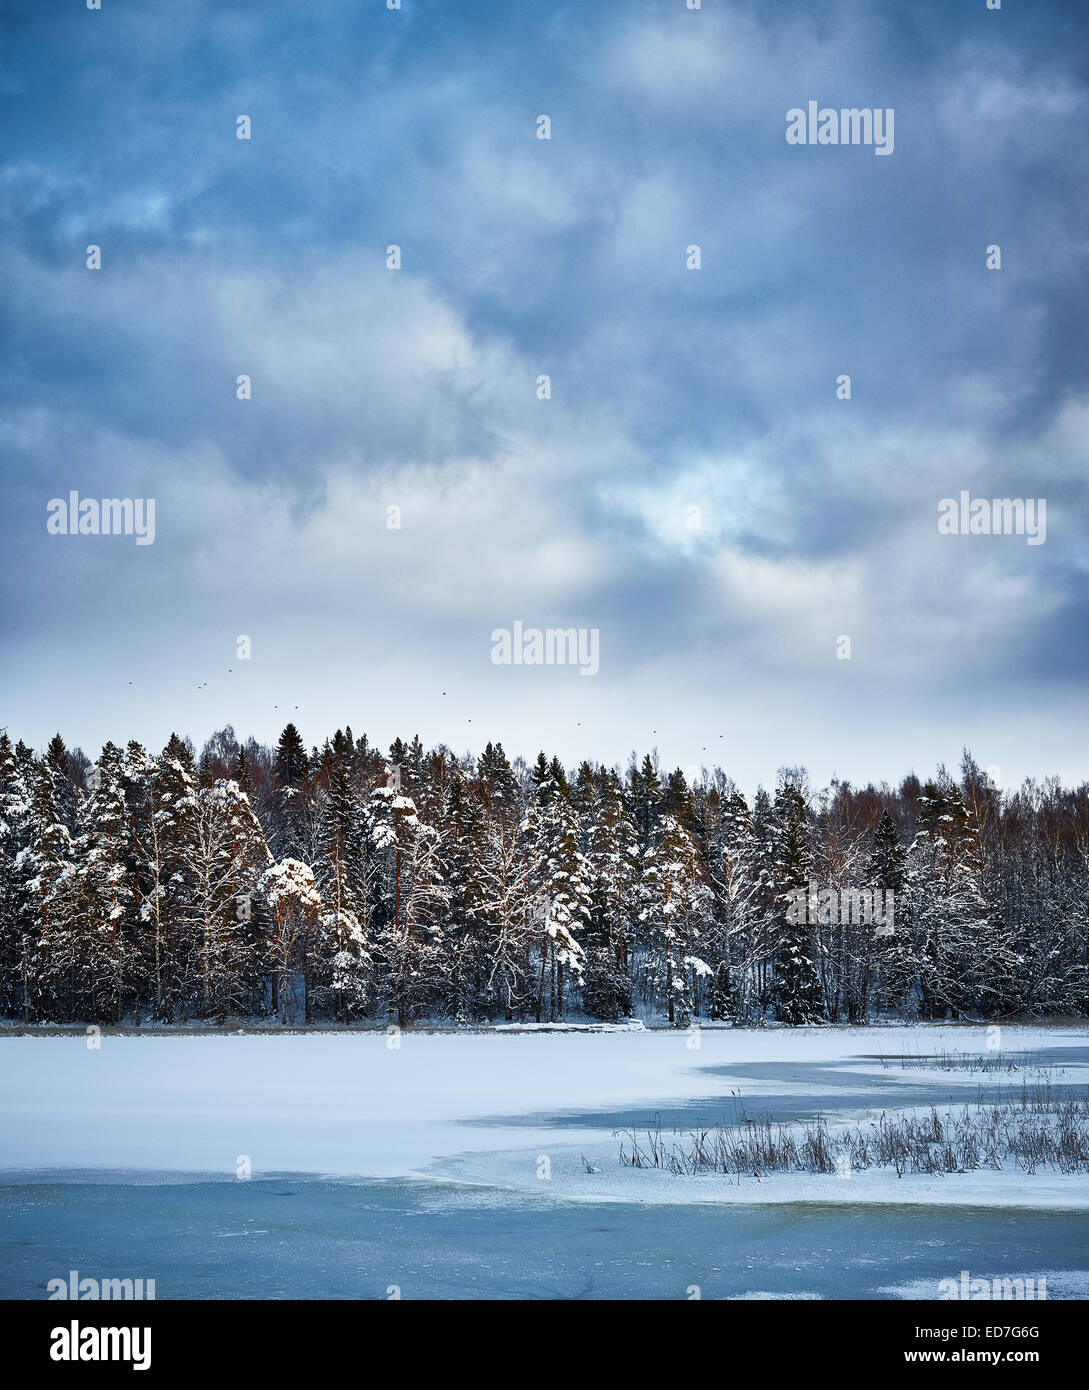 Frozen landscape, sea, forest and overcast sky - Stock Image